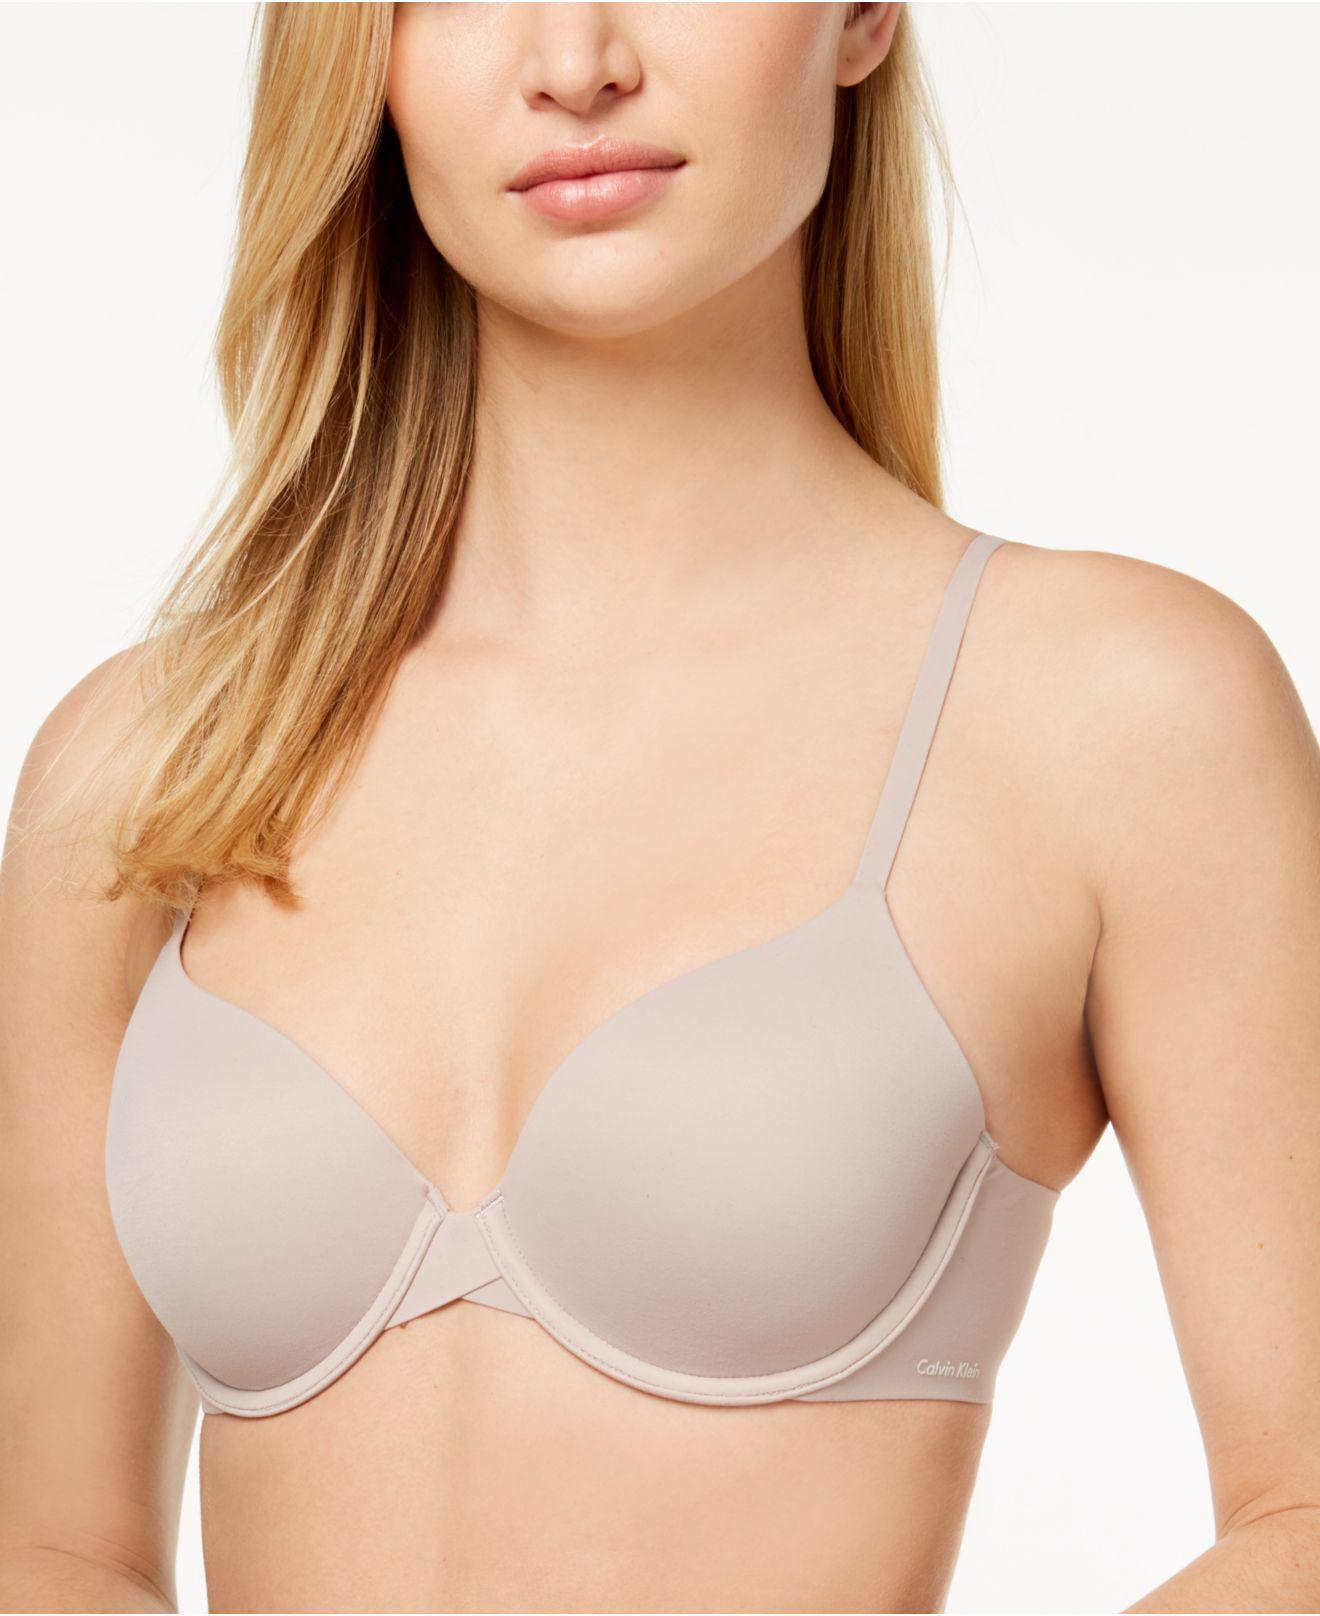 f55099e5d0 Calvin Klein - Natural Perfectly Fit Modern T-shirt Bra F3837 - Lyst. View  fullscreen